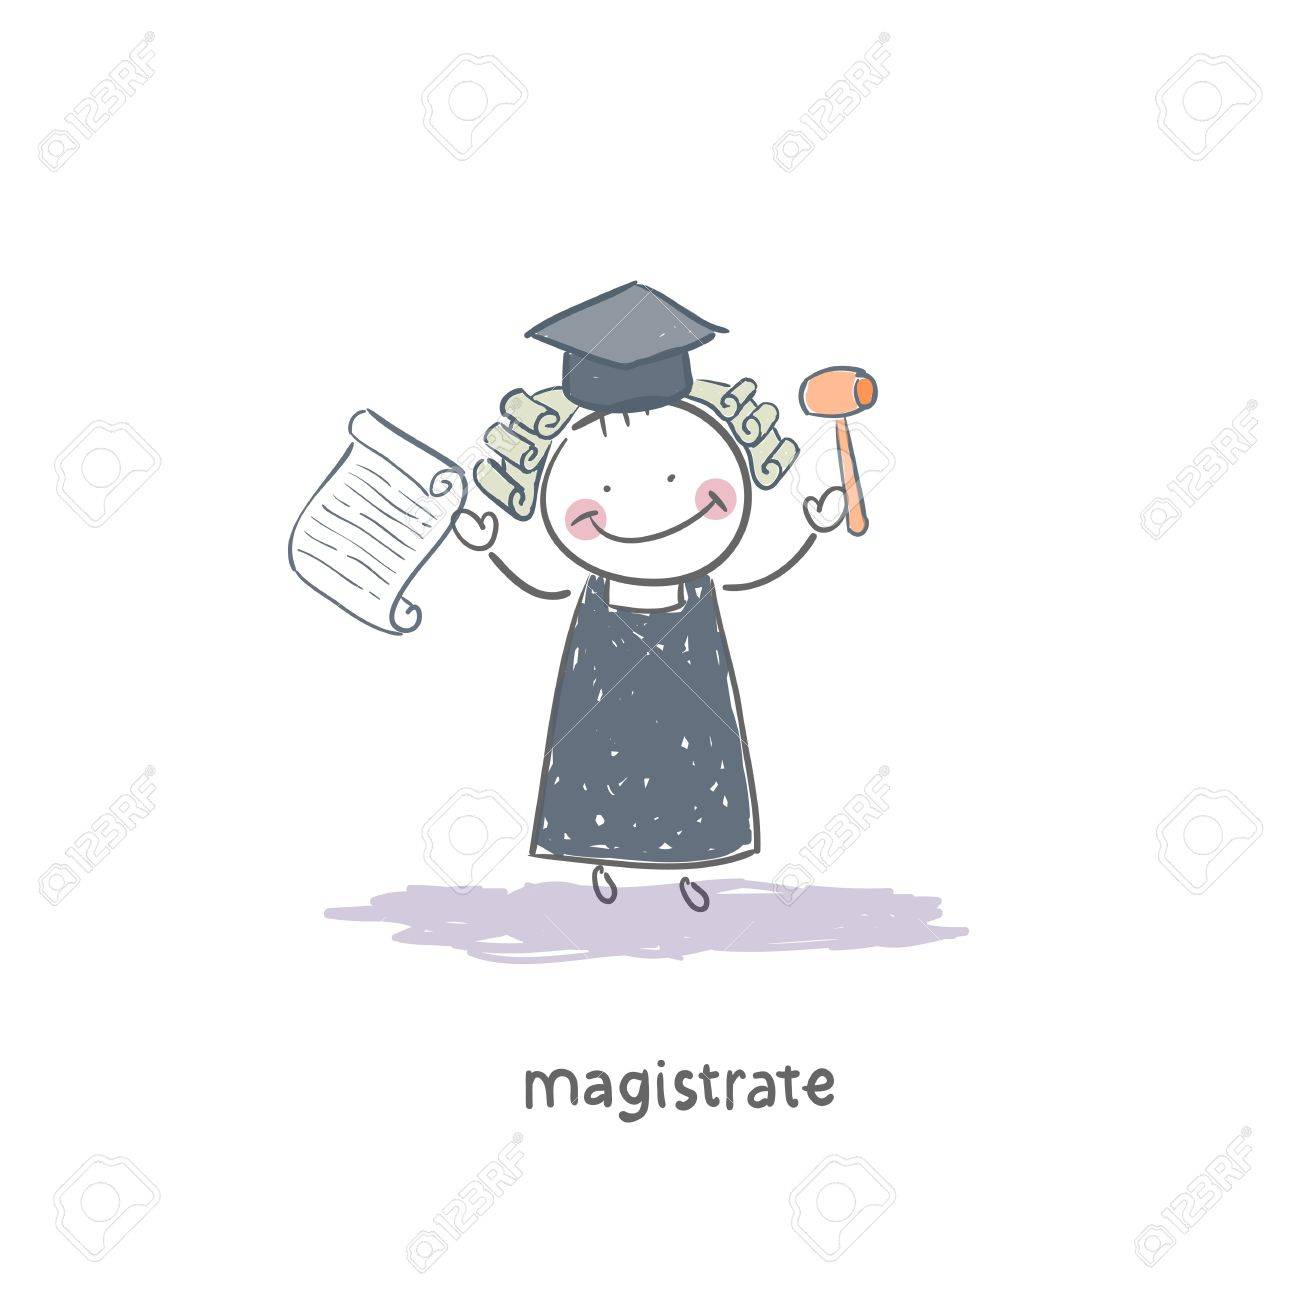 Magistrate Stock Vector - 18244720